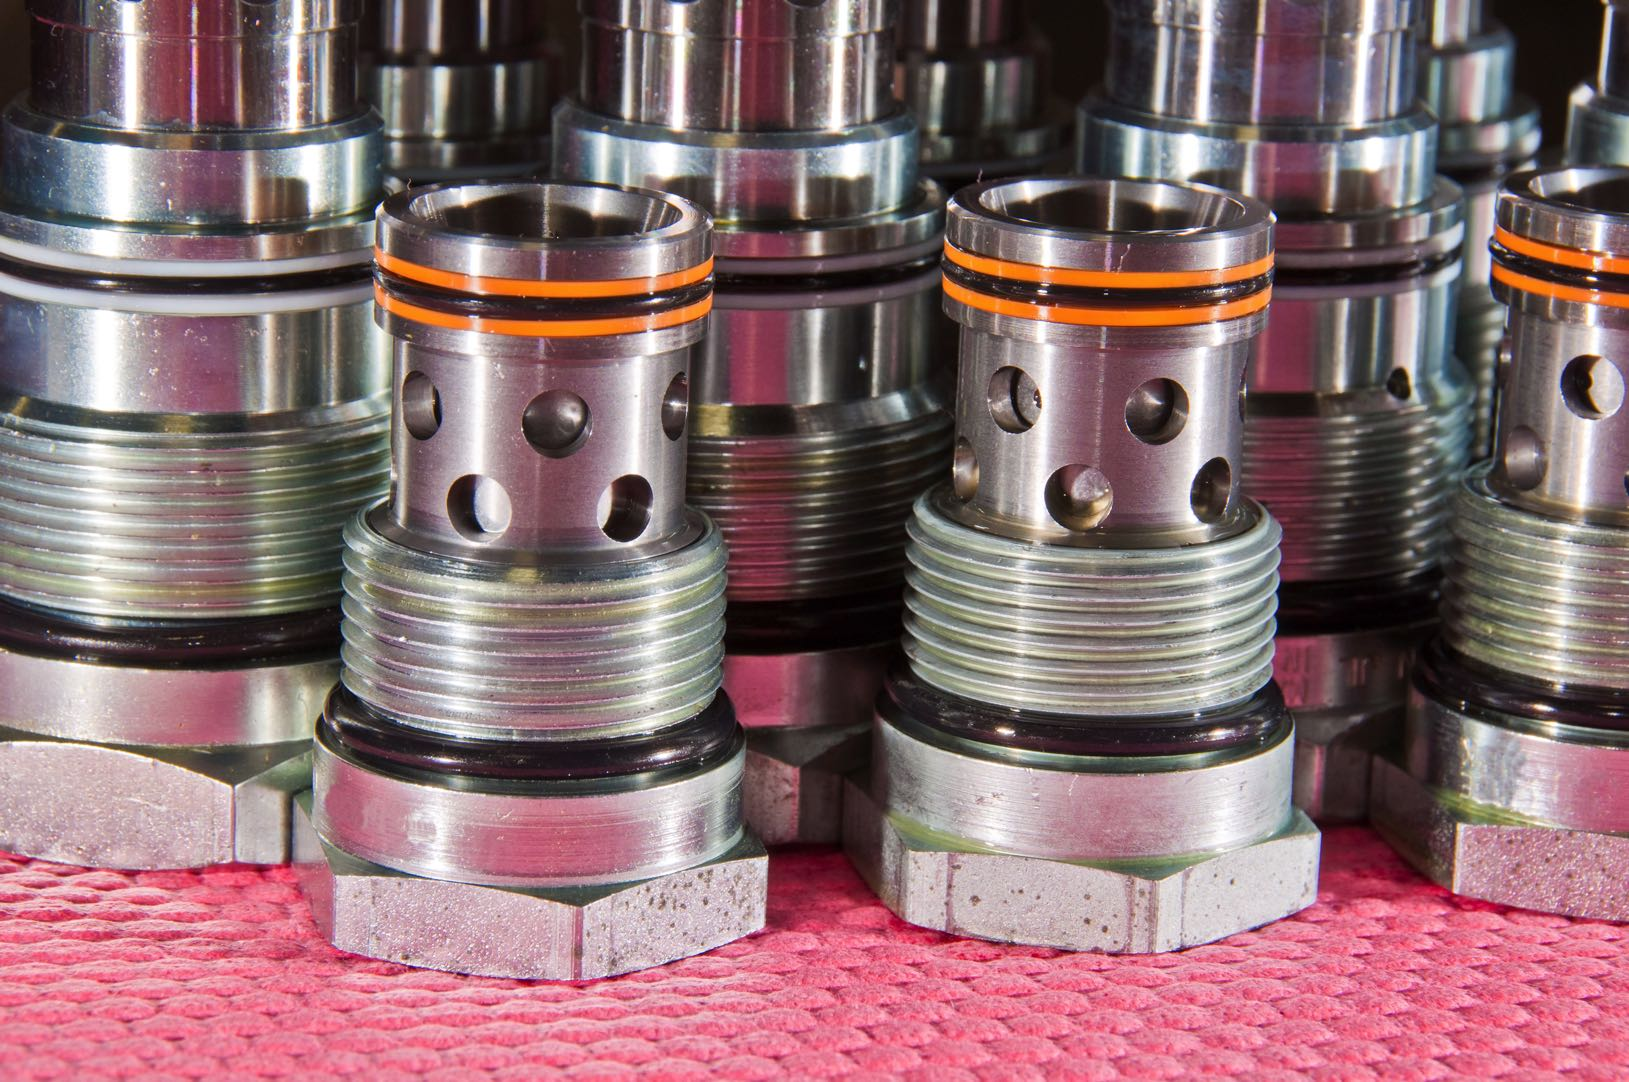 MANUFACTURERS OF HYDRAULIC VALVES